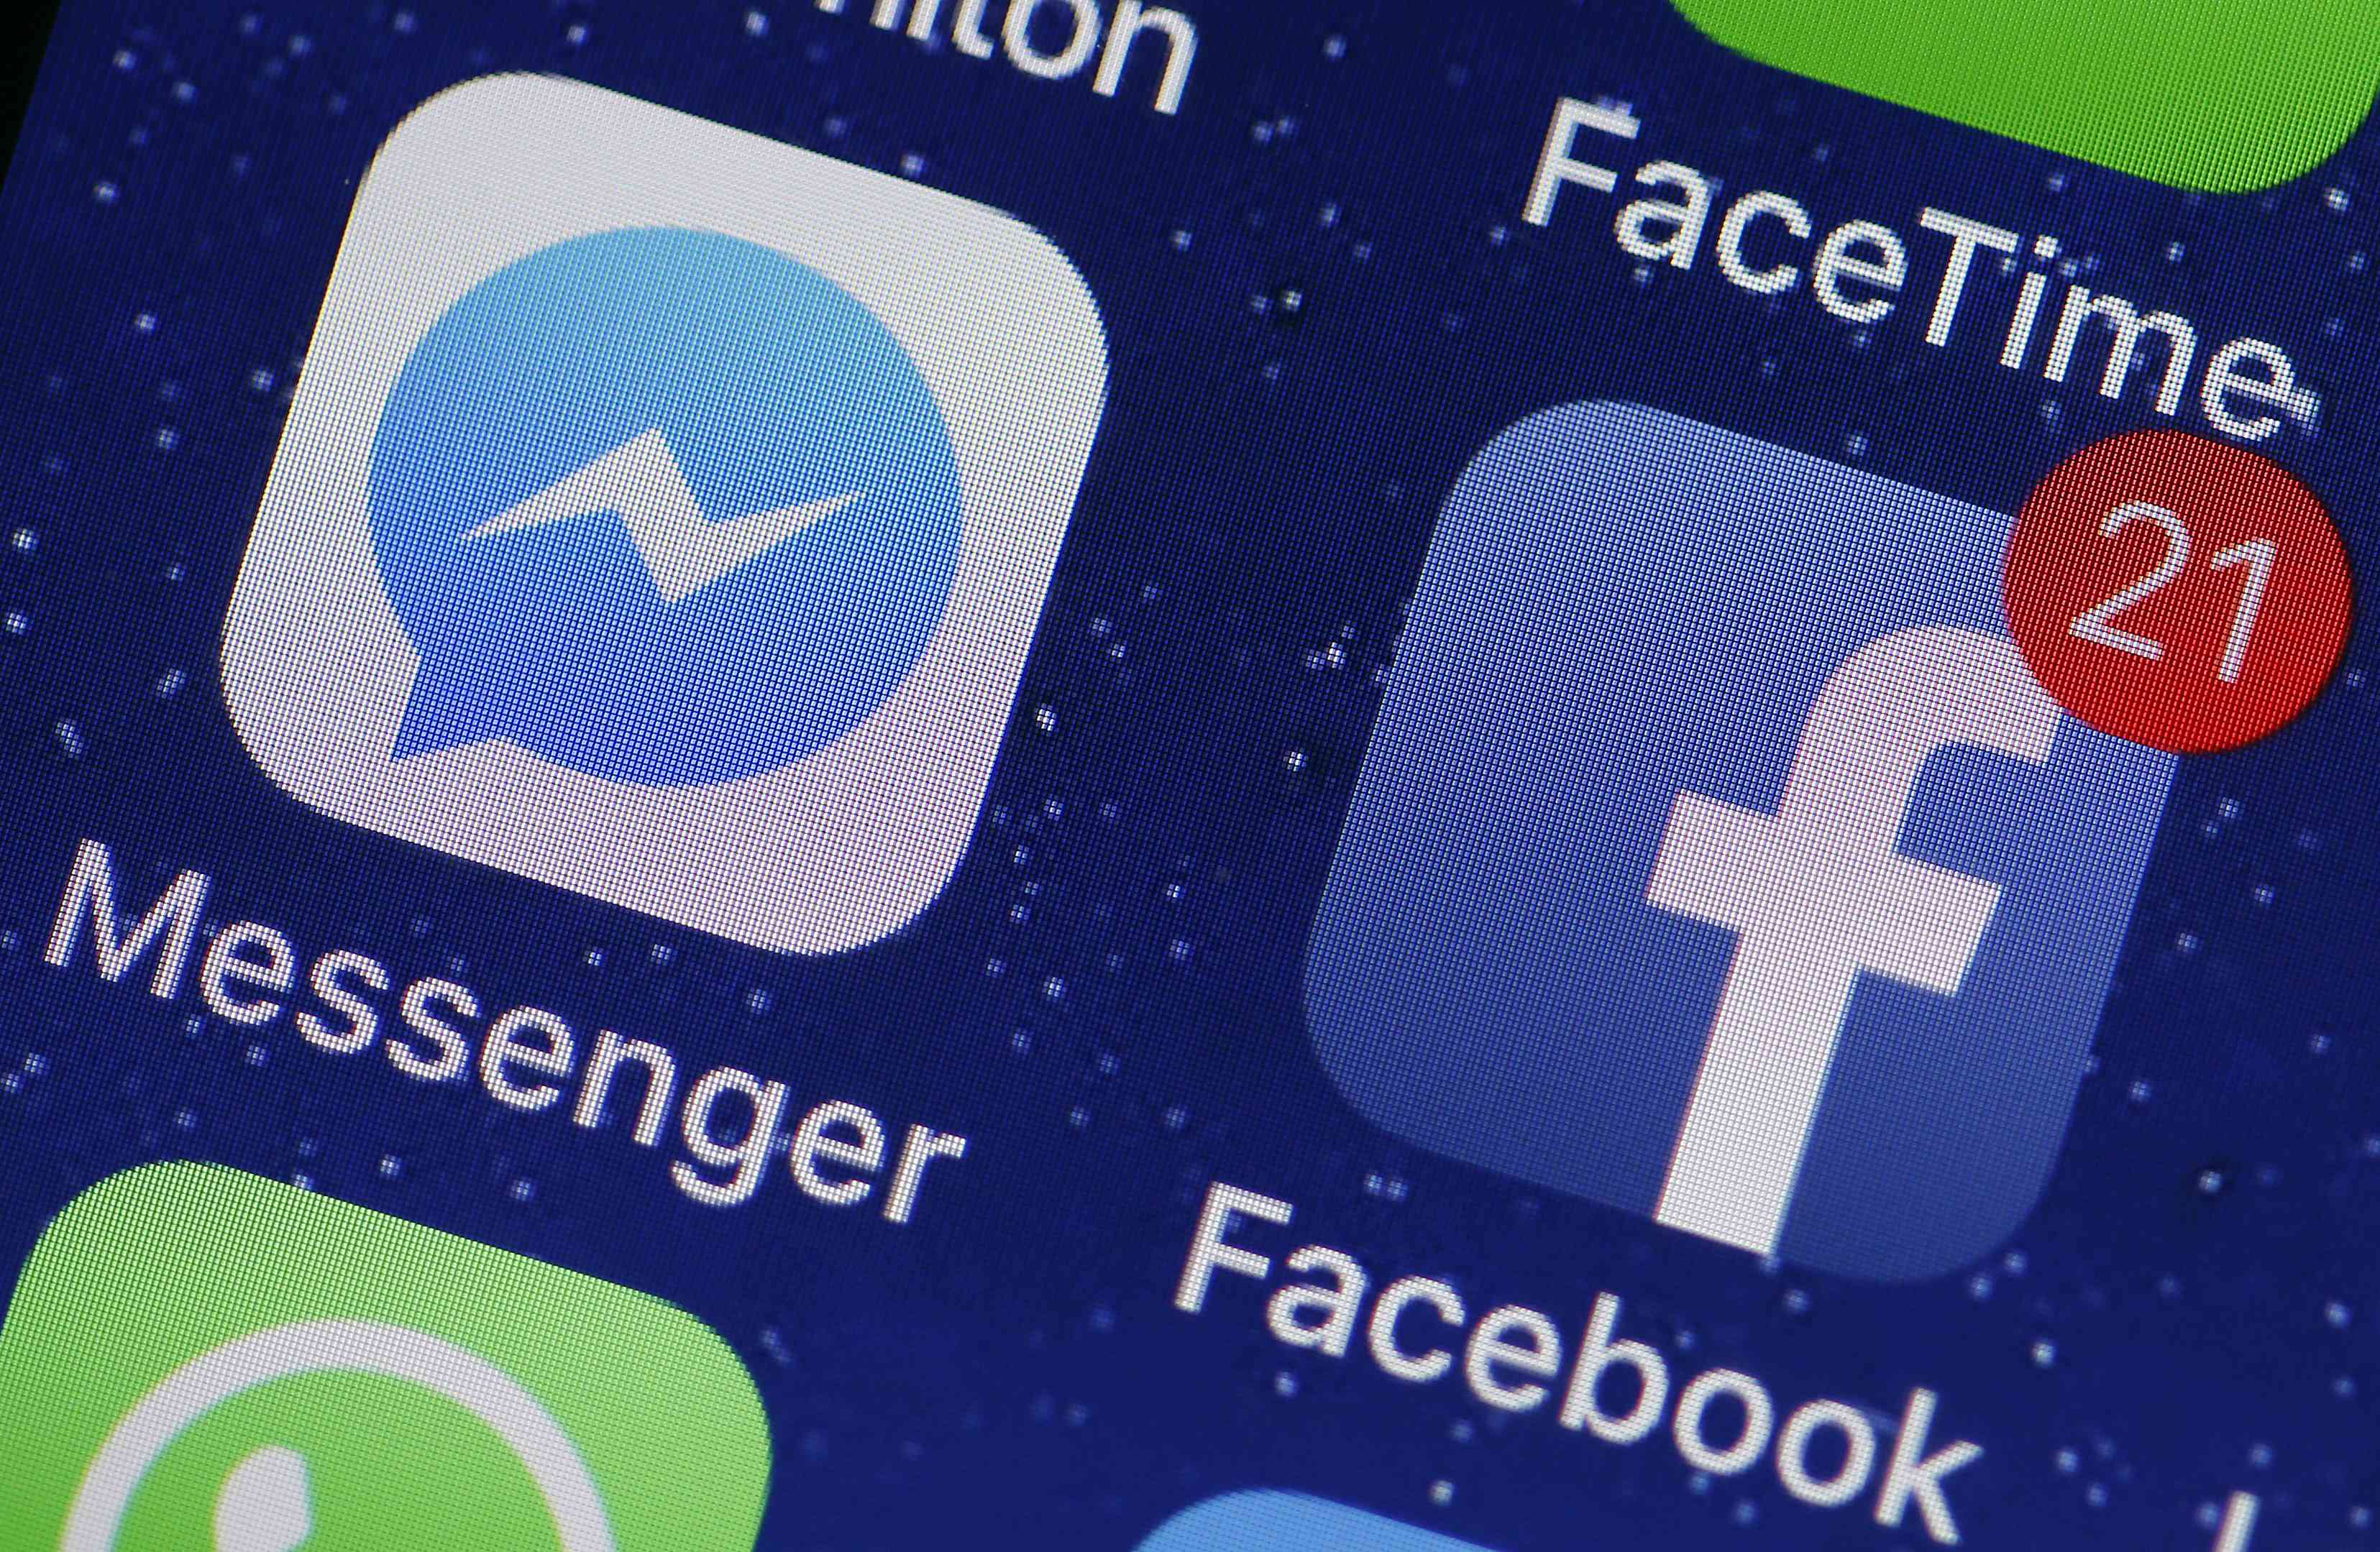 Messenger and Facebook icons on an iPhone